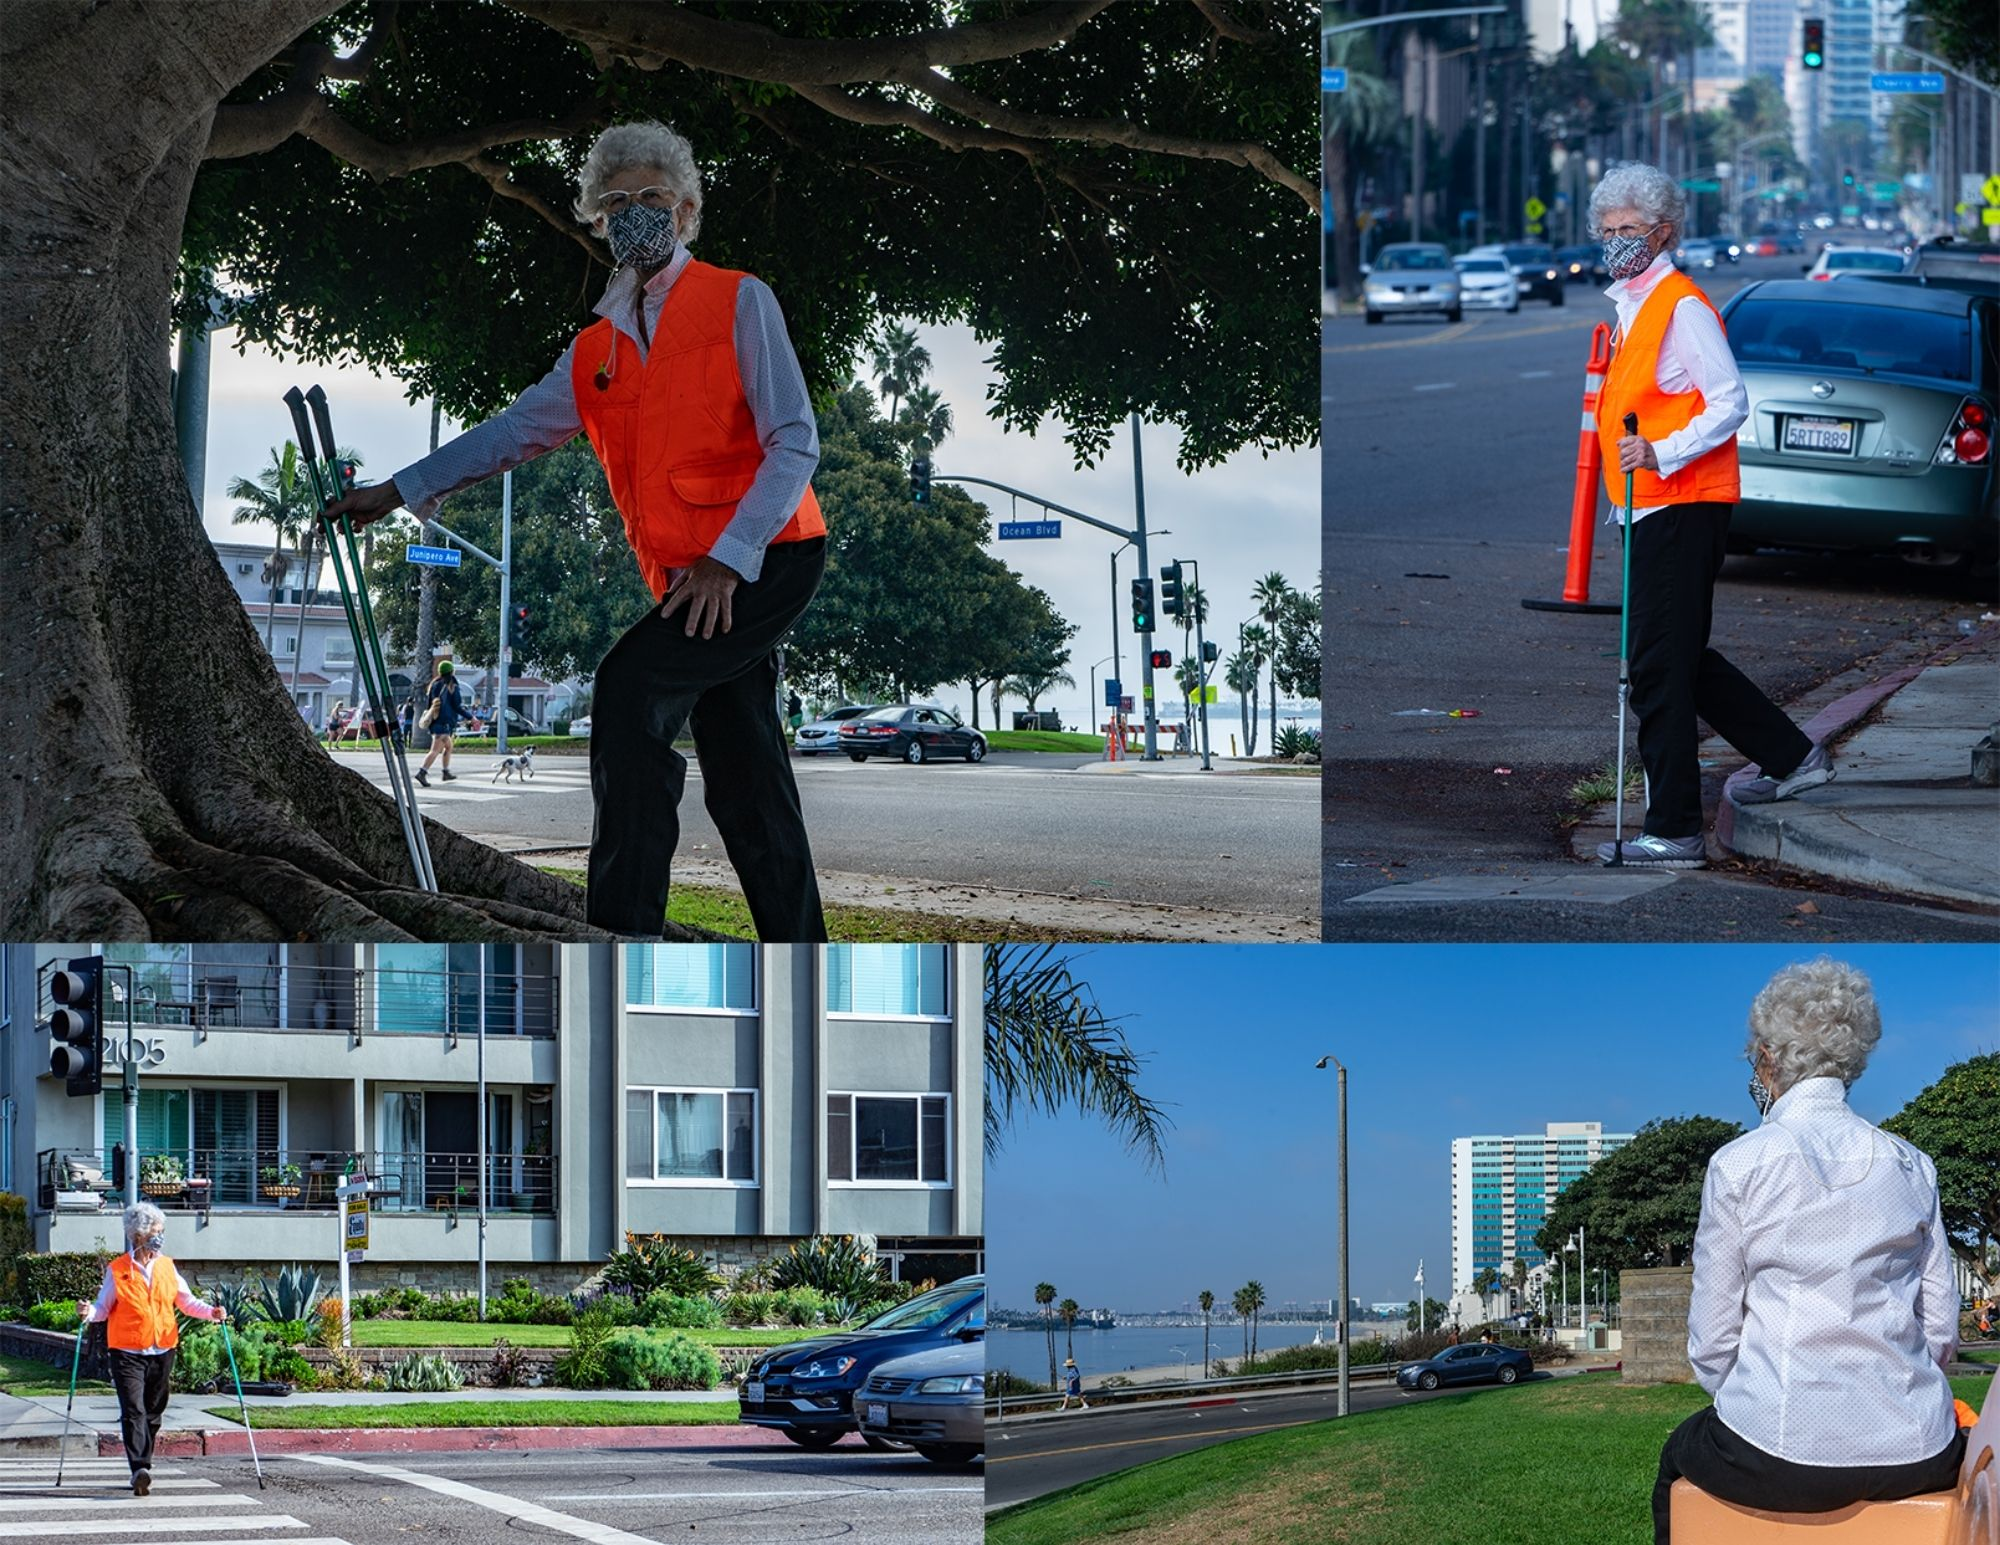 walking safely is part of a healthy lifestyle